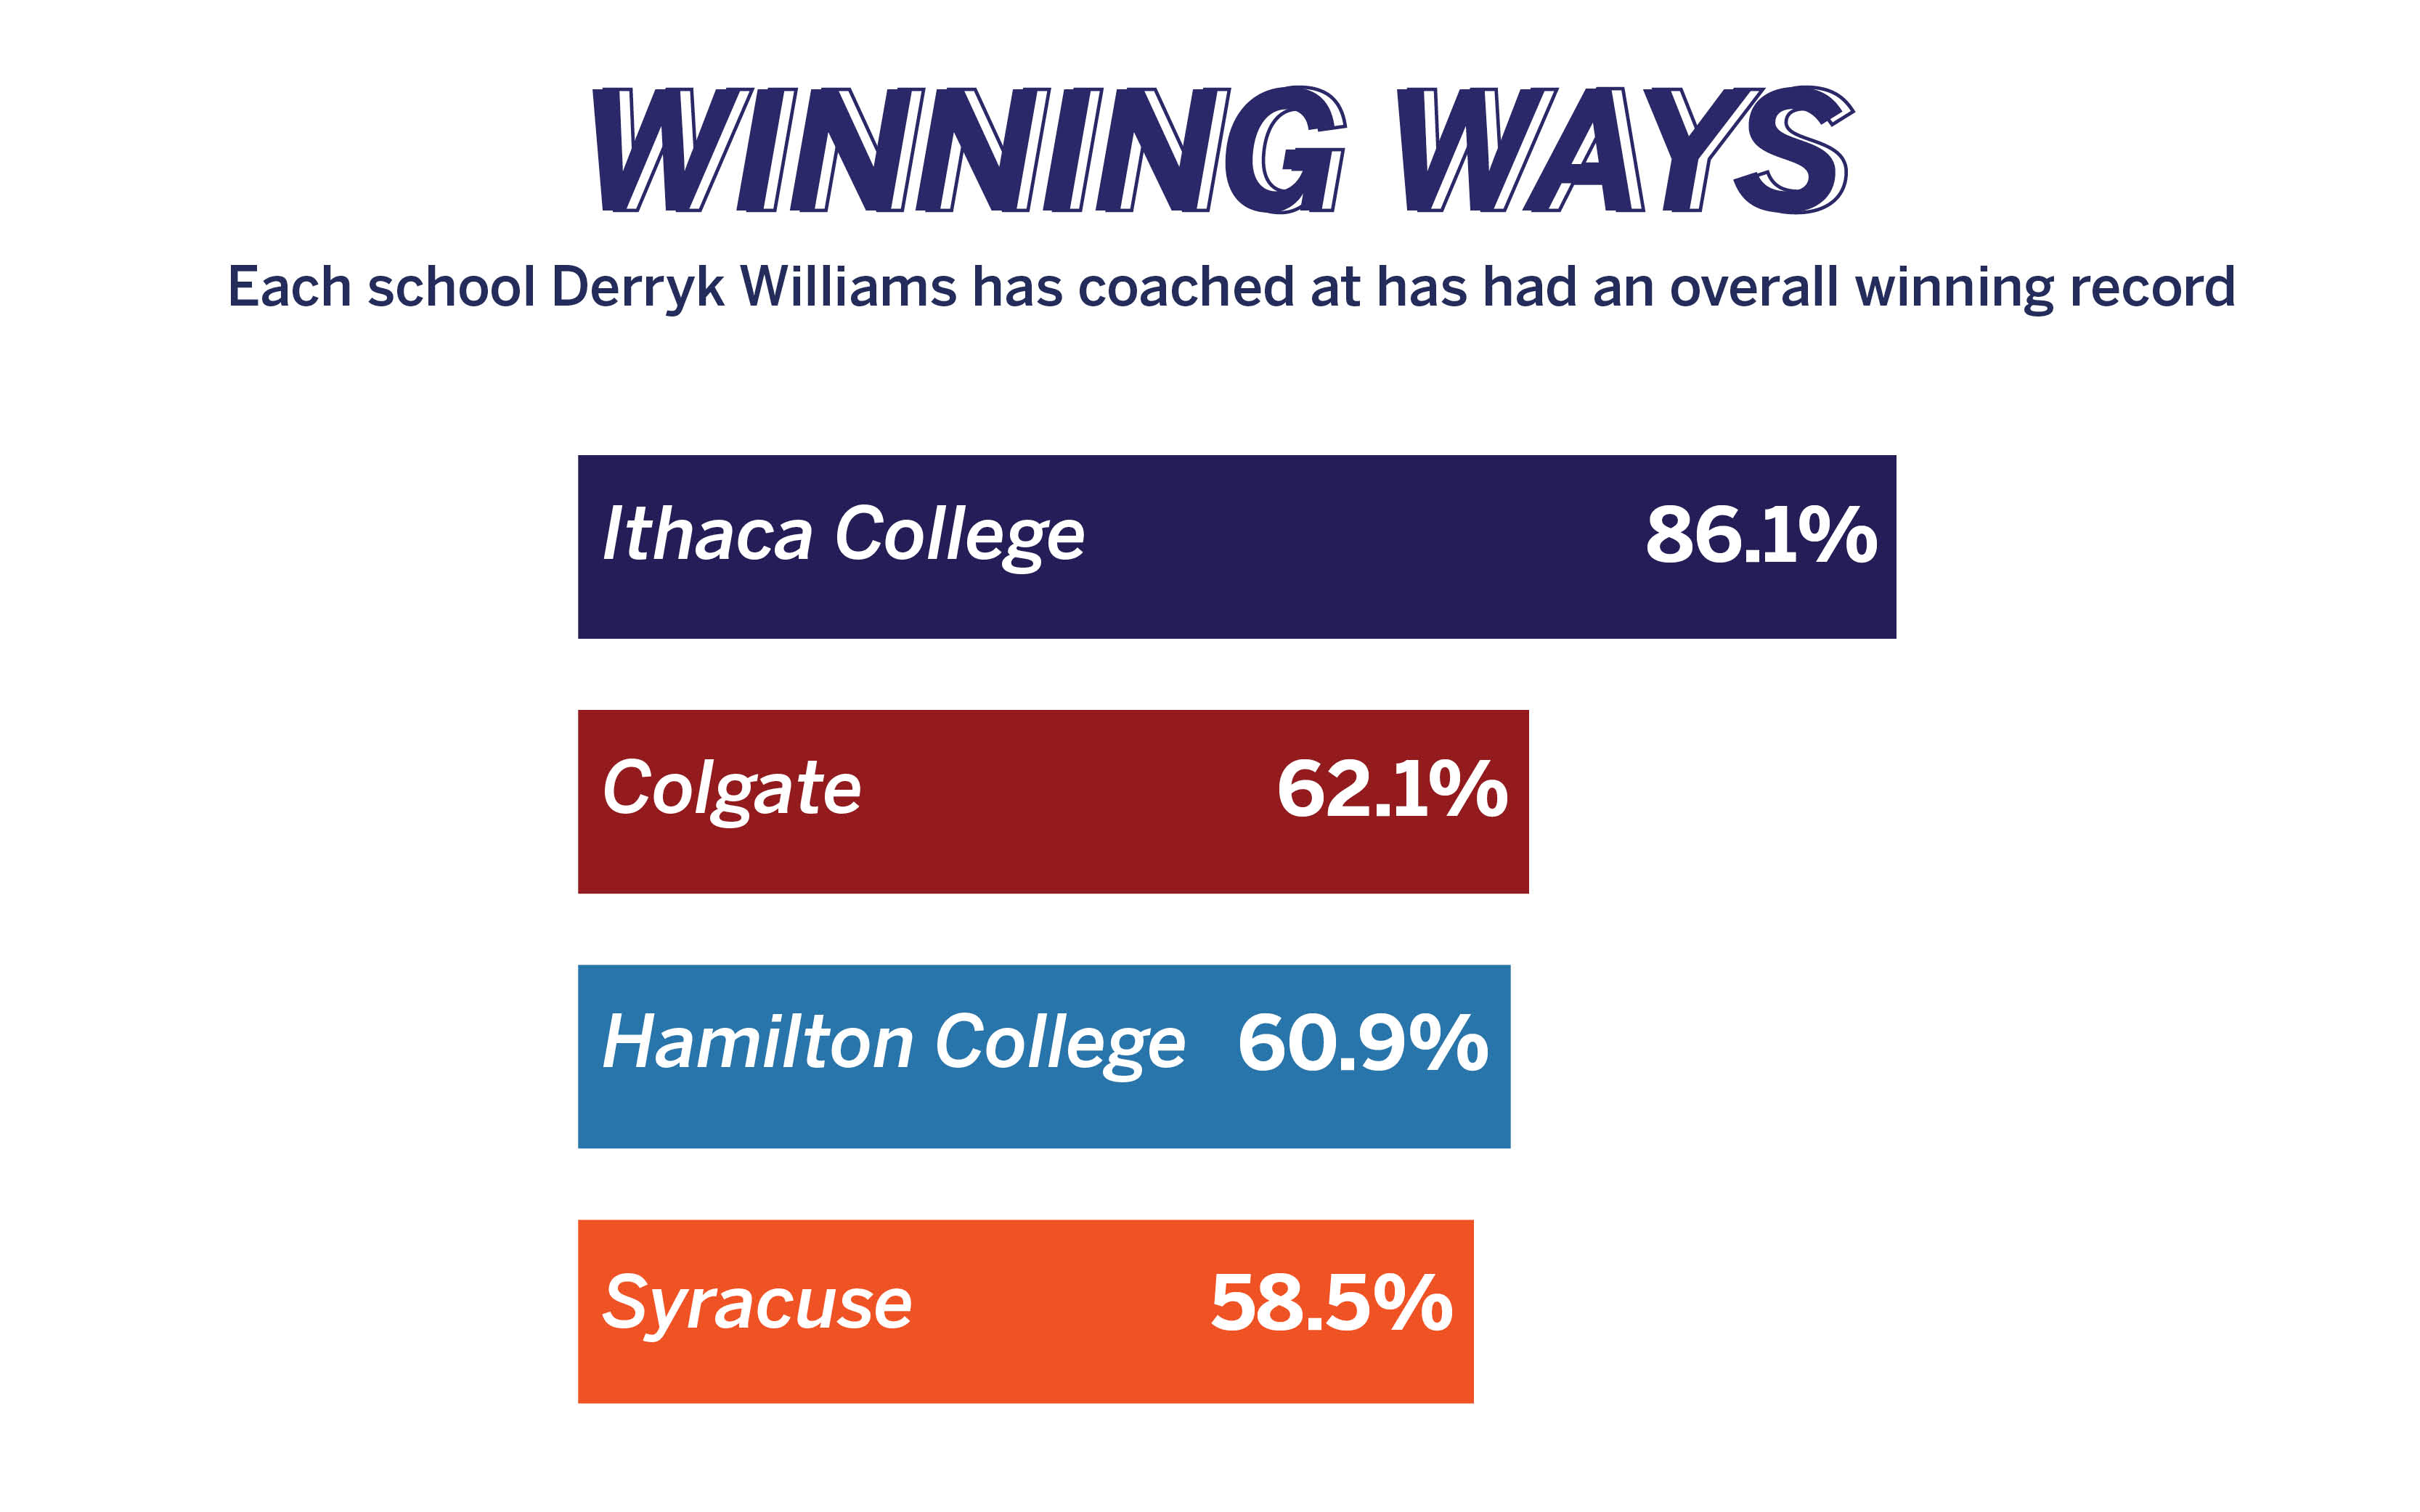 Derryk Williams has always had an overall winning record.